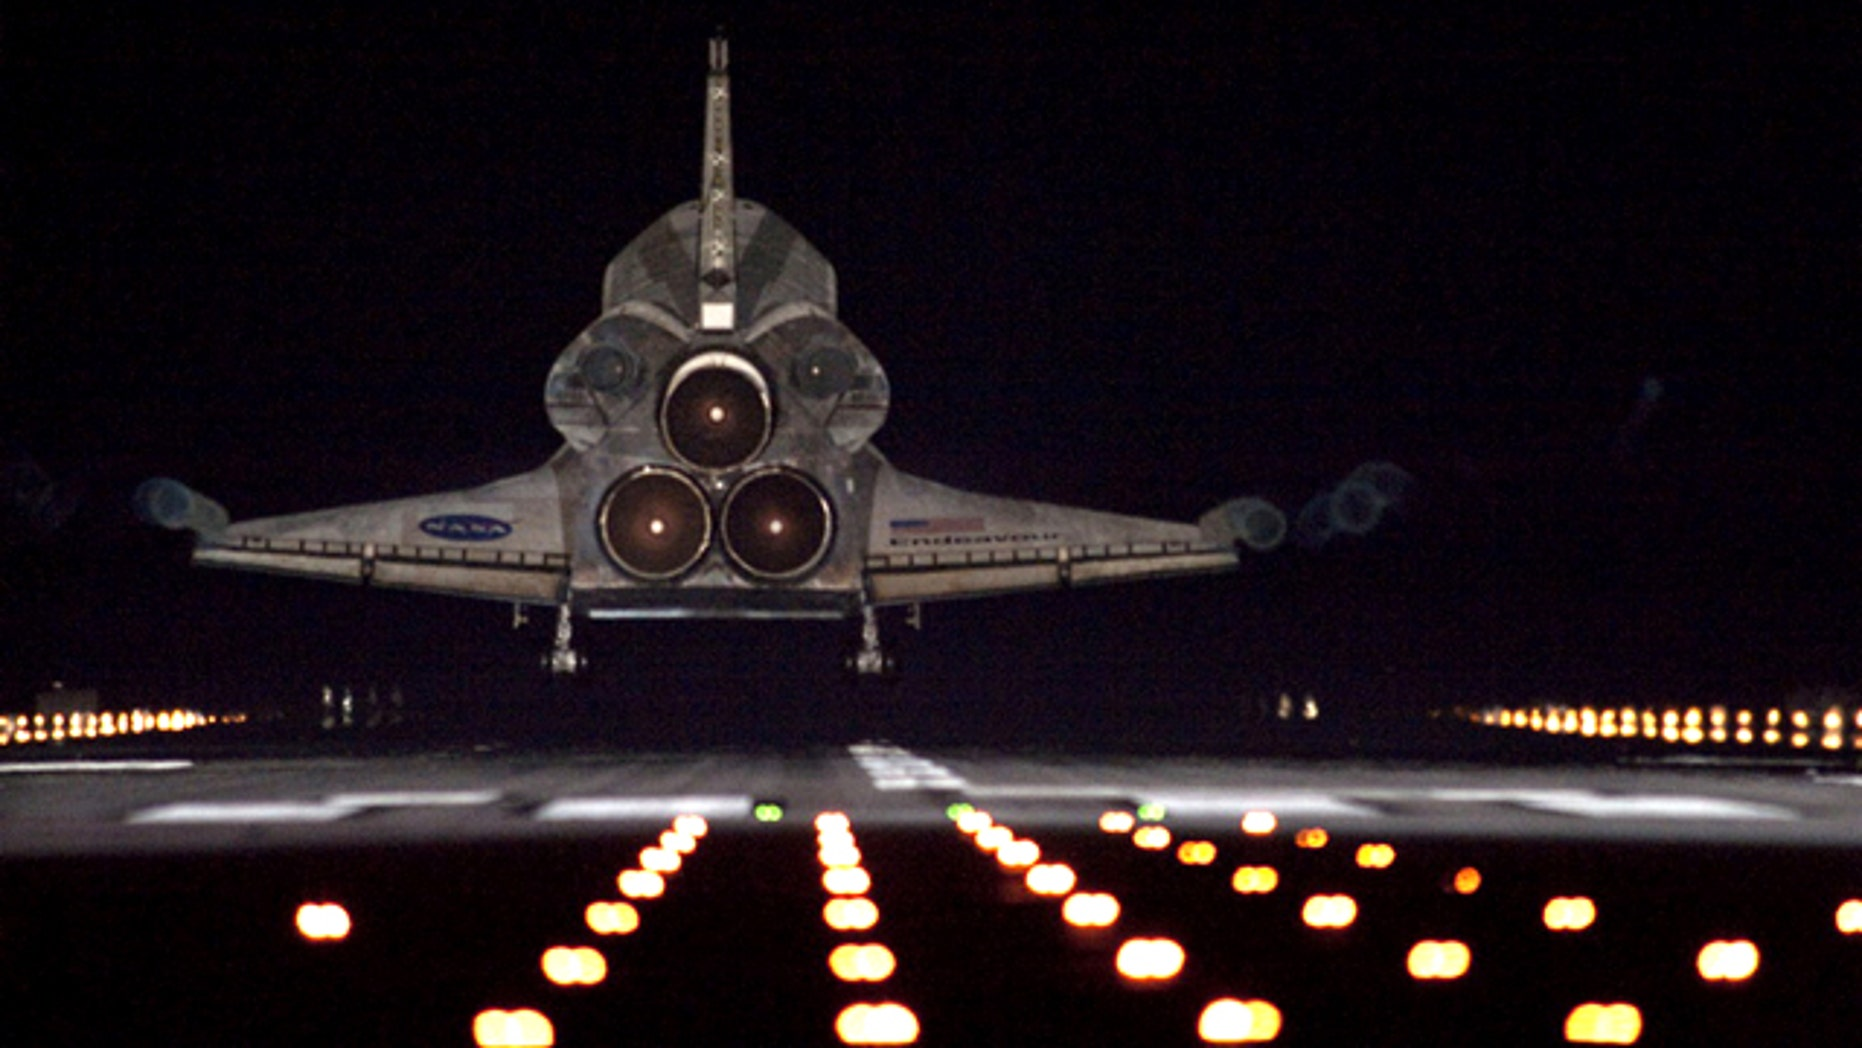 Runway lights help lead space shuttle Endeavour, seen here from behind, home to NASA's Kennedy Space Center in Florida. Endeavour landed for the final time on the Shuttle Landing Facility's Runway 15, on June 1, 2011, marking the 24th night landing of NASA's Space Shuttle Program.